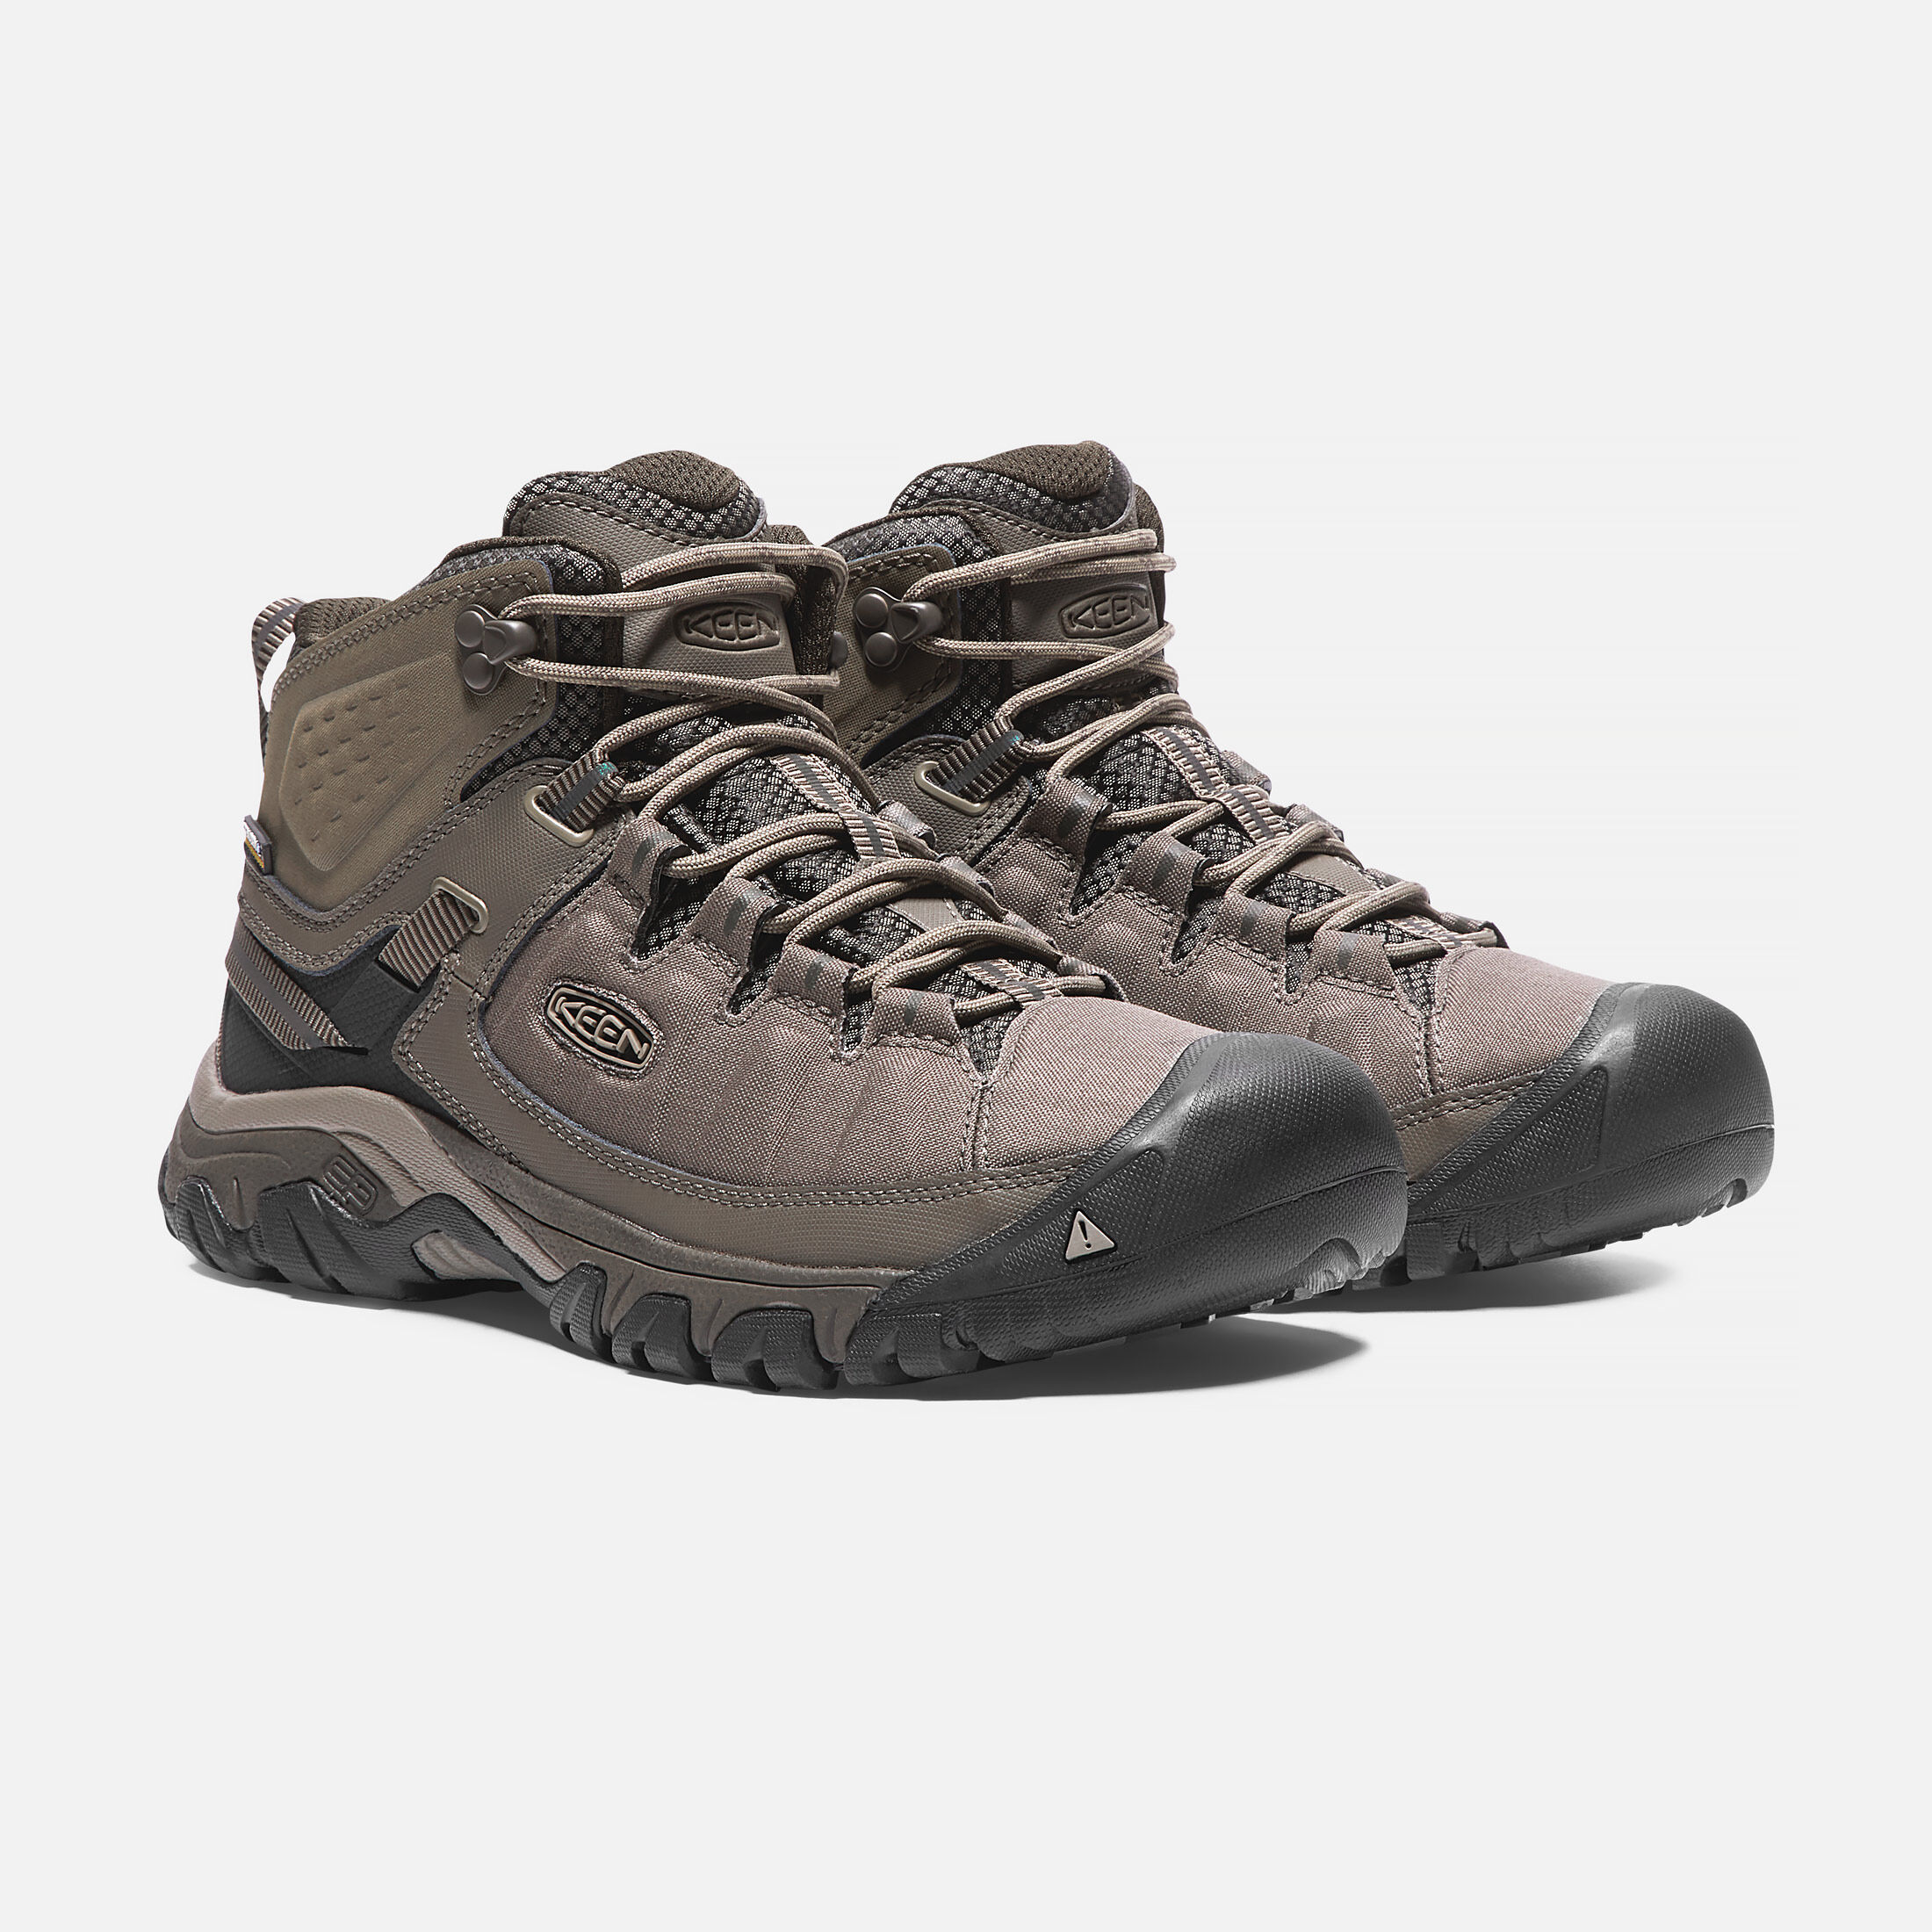 Keen Targhee Explorer Mid Waterproof Boot(Men's) -Black/Steel Grey How Much Sale Online With Credit Card Cheap Online Cheap Price Cost Sale Best Seller Free Shipping Cheapest Price KjVor